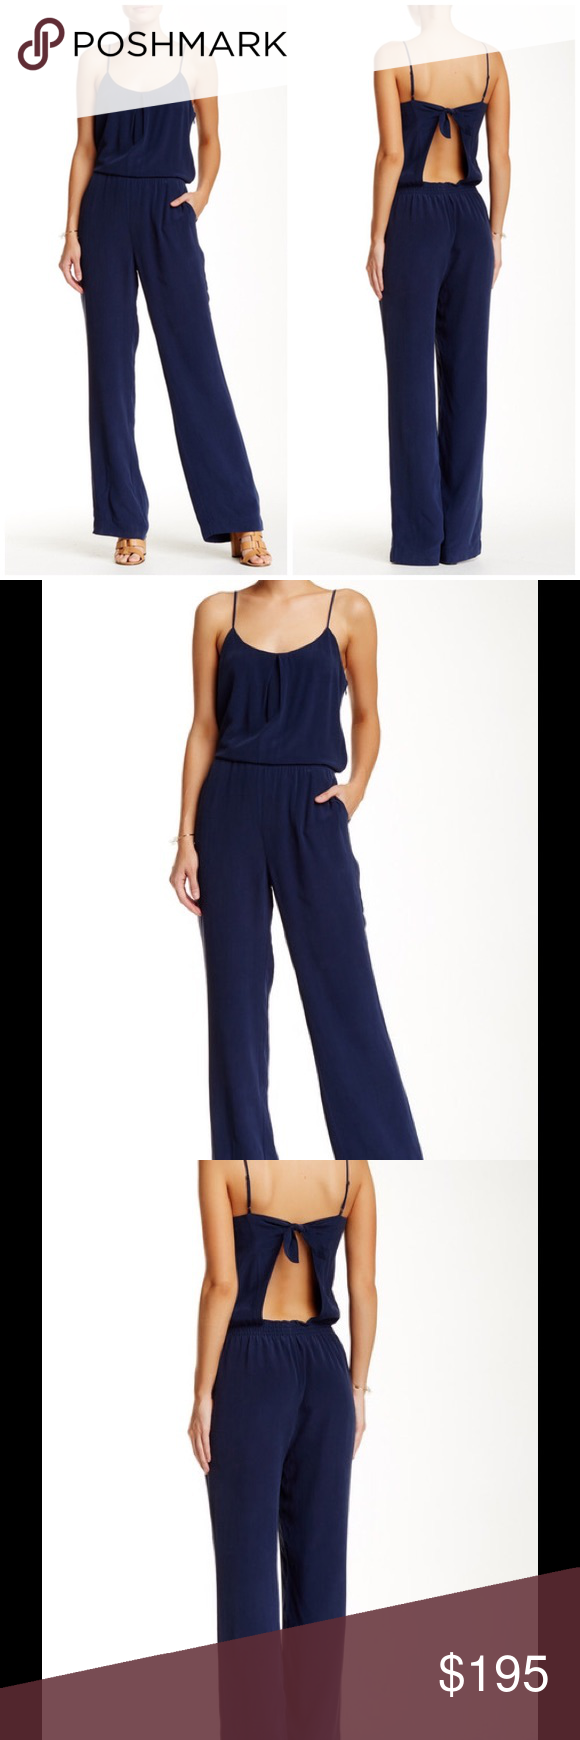 b7a2c3abd91 HP Joie Lundy silk jumpsuit dark navy An inverted pleat at the bust and a  knot at the open back provide just the right touches to take a solid crepe  ...